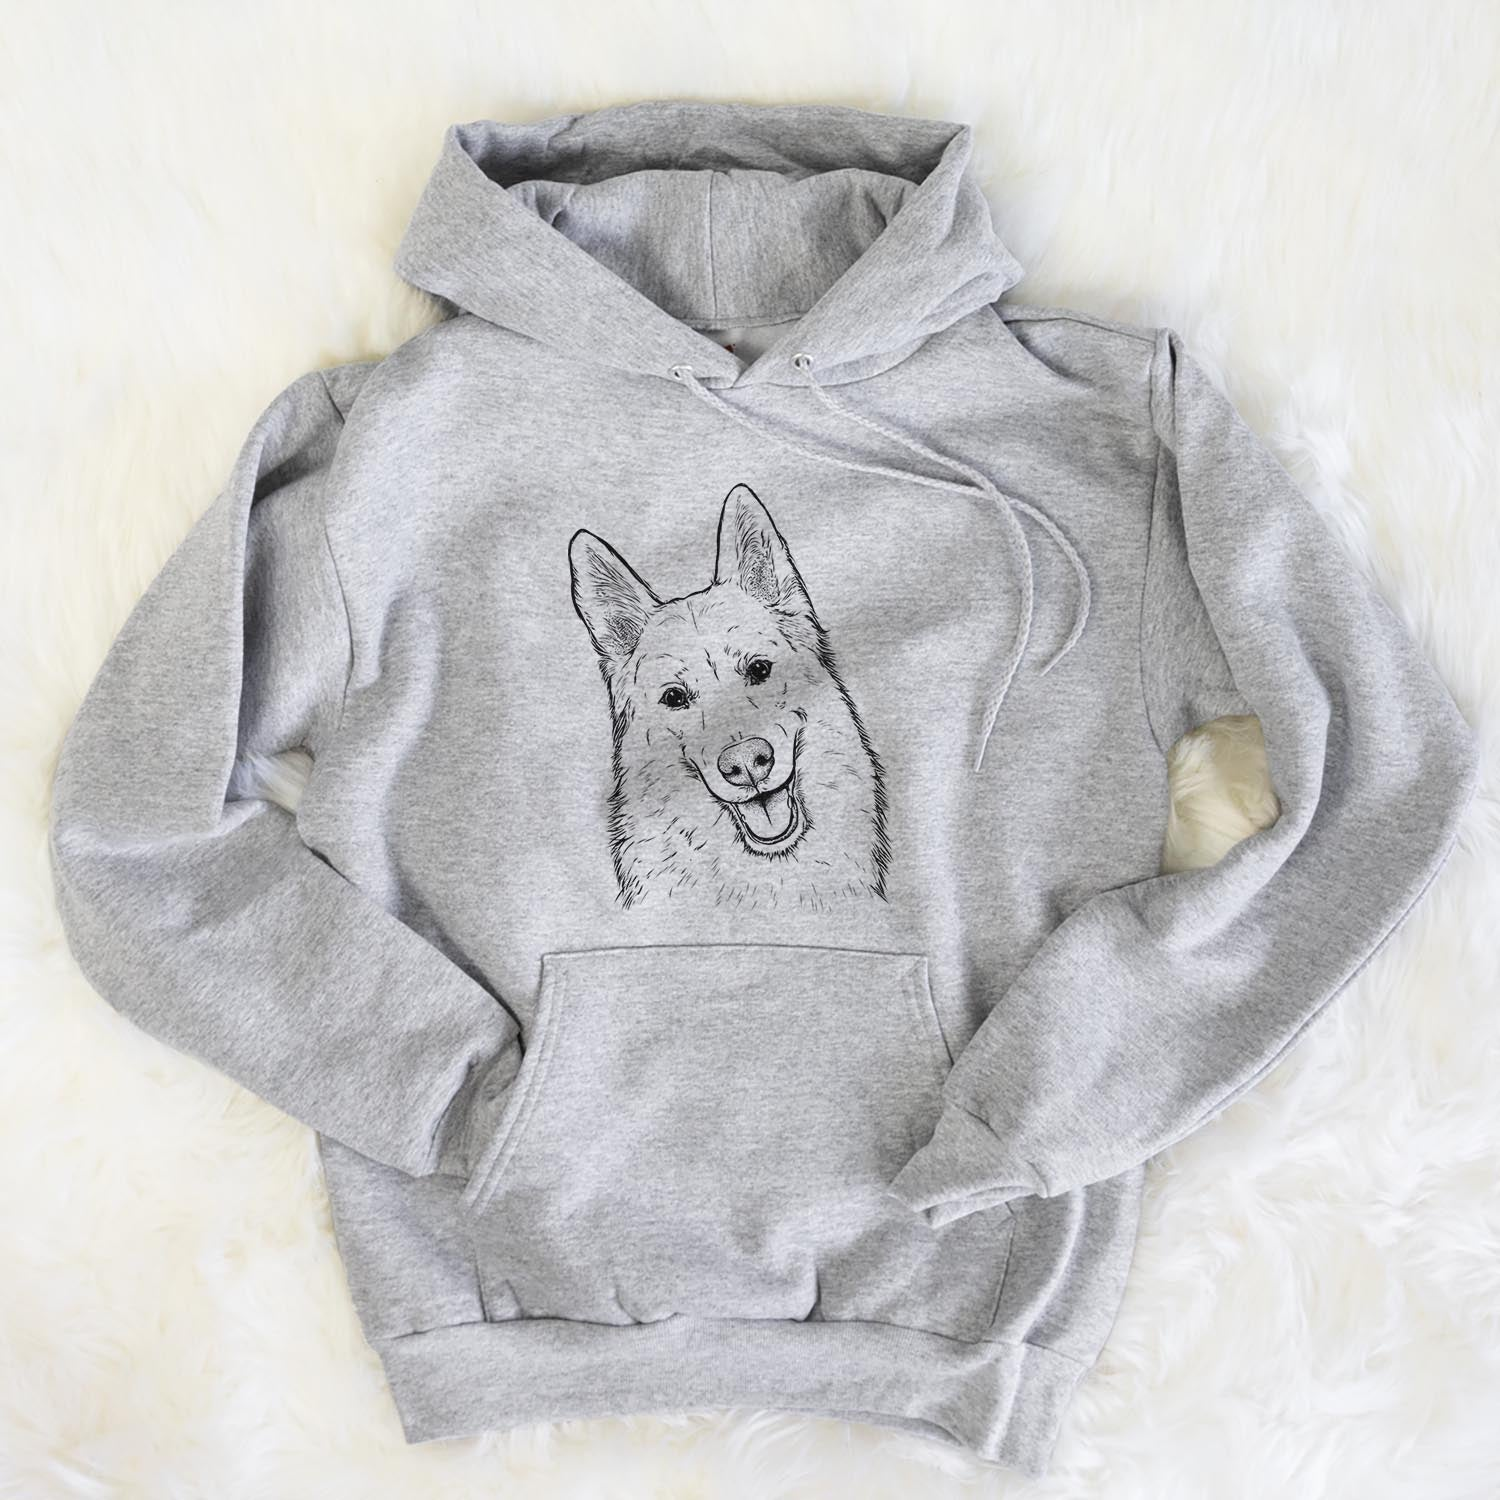 Loki the Husky Shepherd Mix - Unisex Hooded Sweatshirt